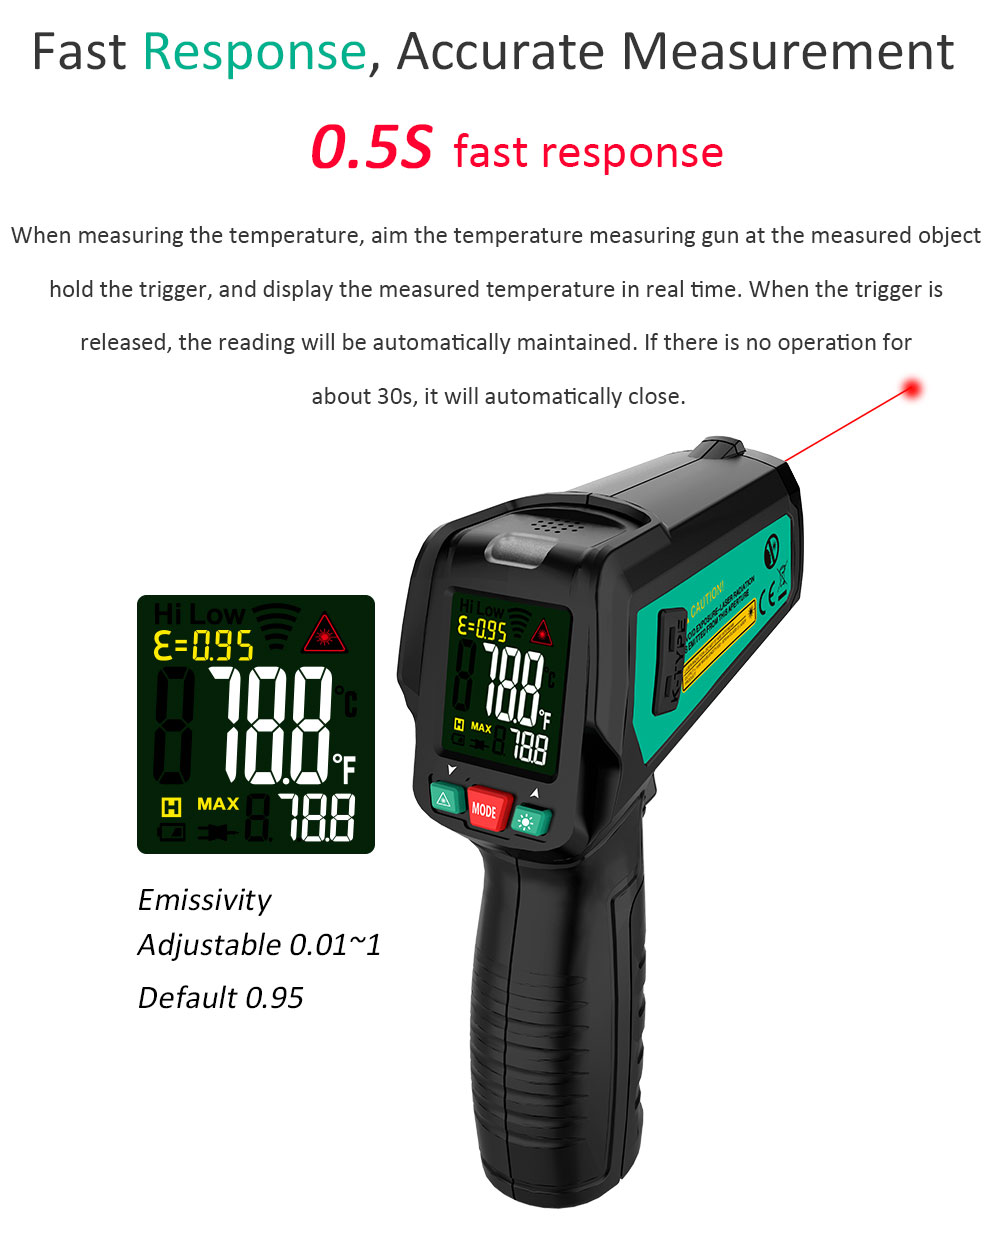 High Precision Non Contact Thermometer with K Probe and LCD Display to Check Body Temperature 15